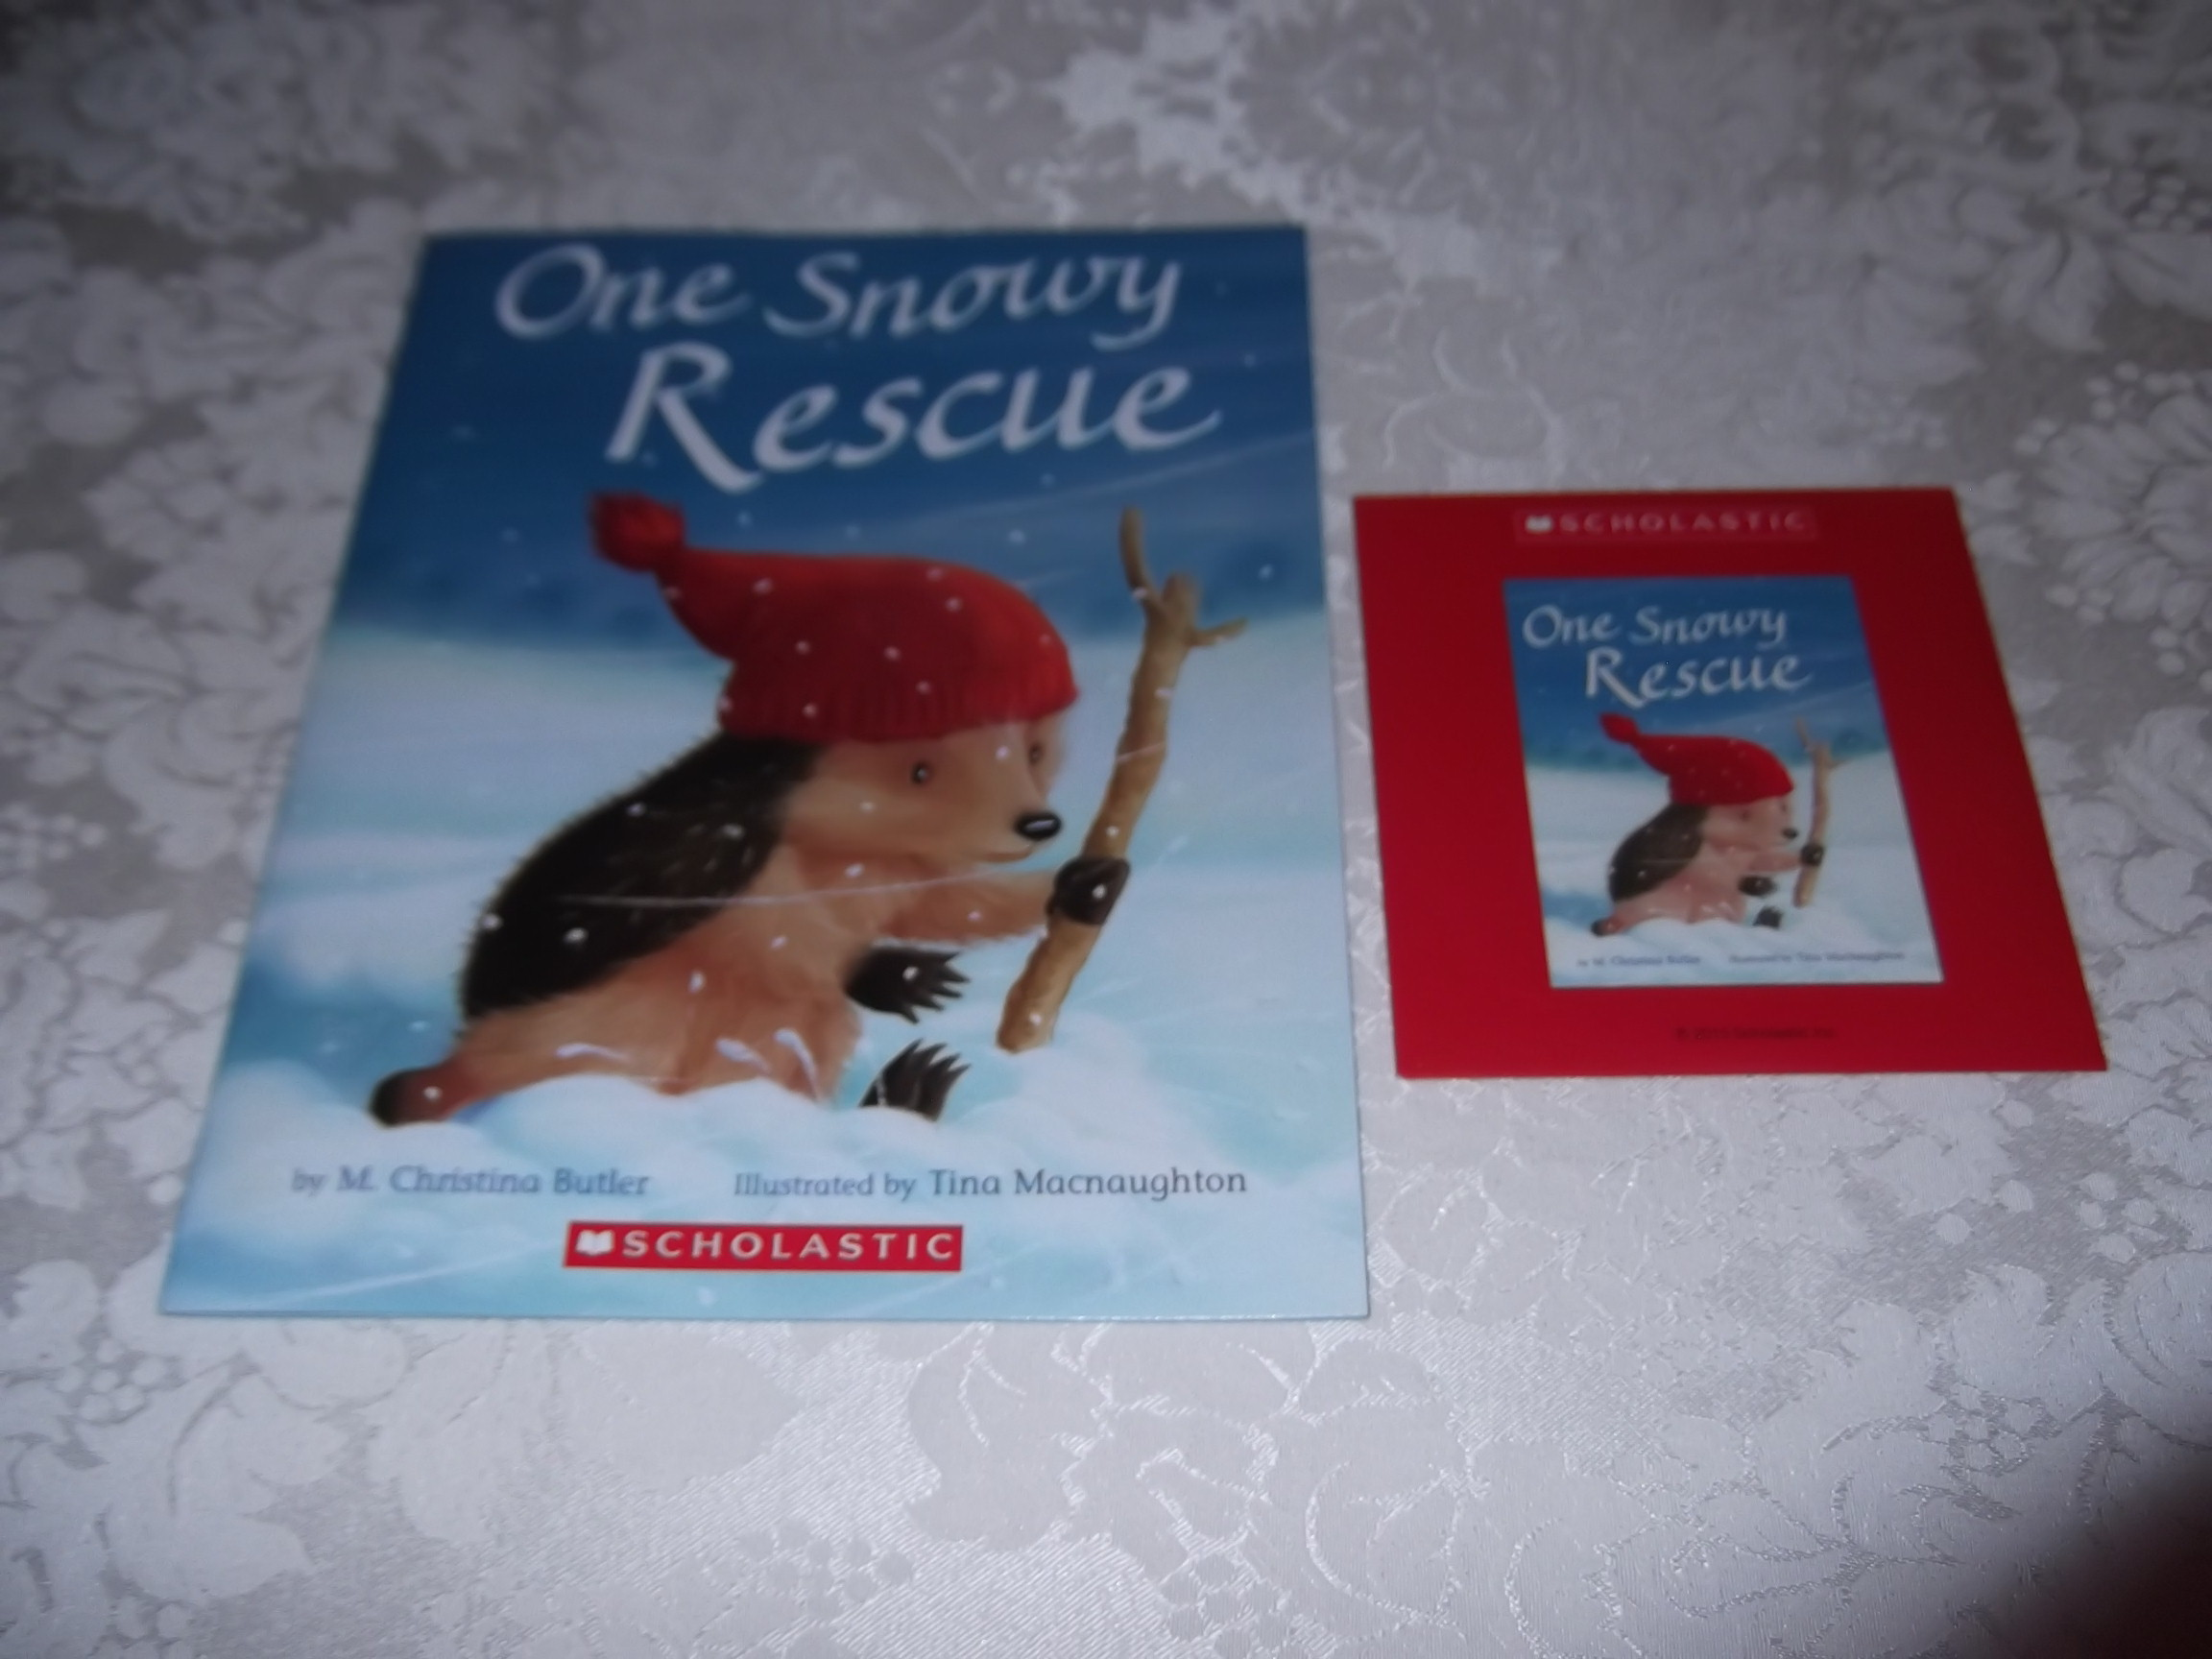 One Snowy Rescue M. Christina Butler Audio CD & SC Brand New